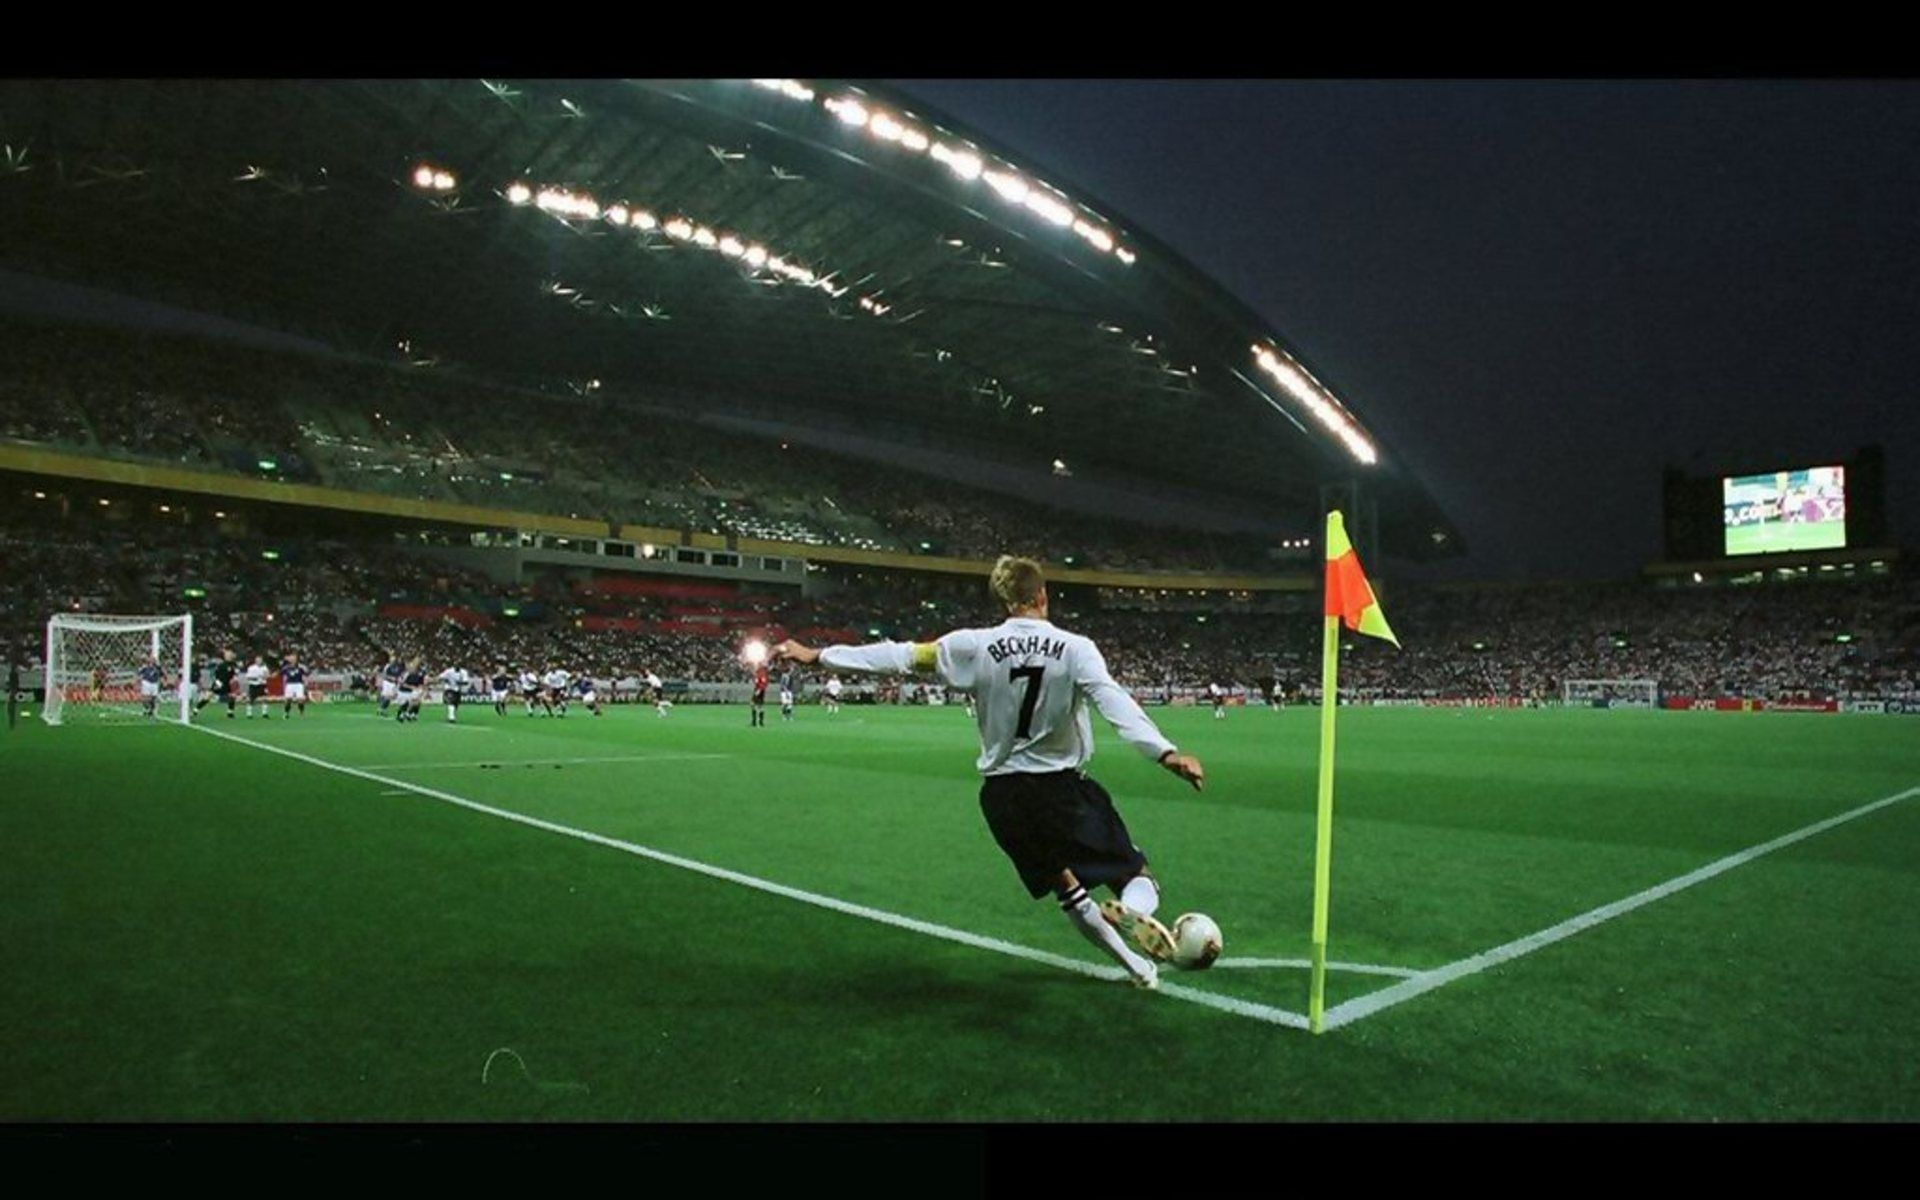 Beckham S Form When Taking A Kick Sports Wallpapers Sports Sports Photos